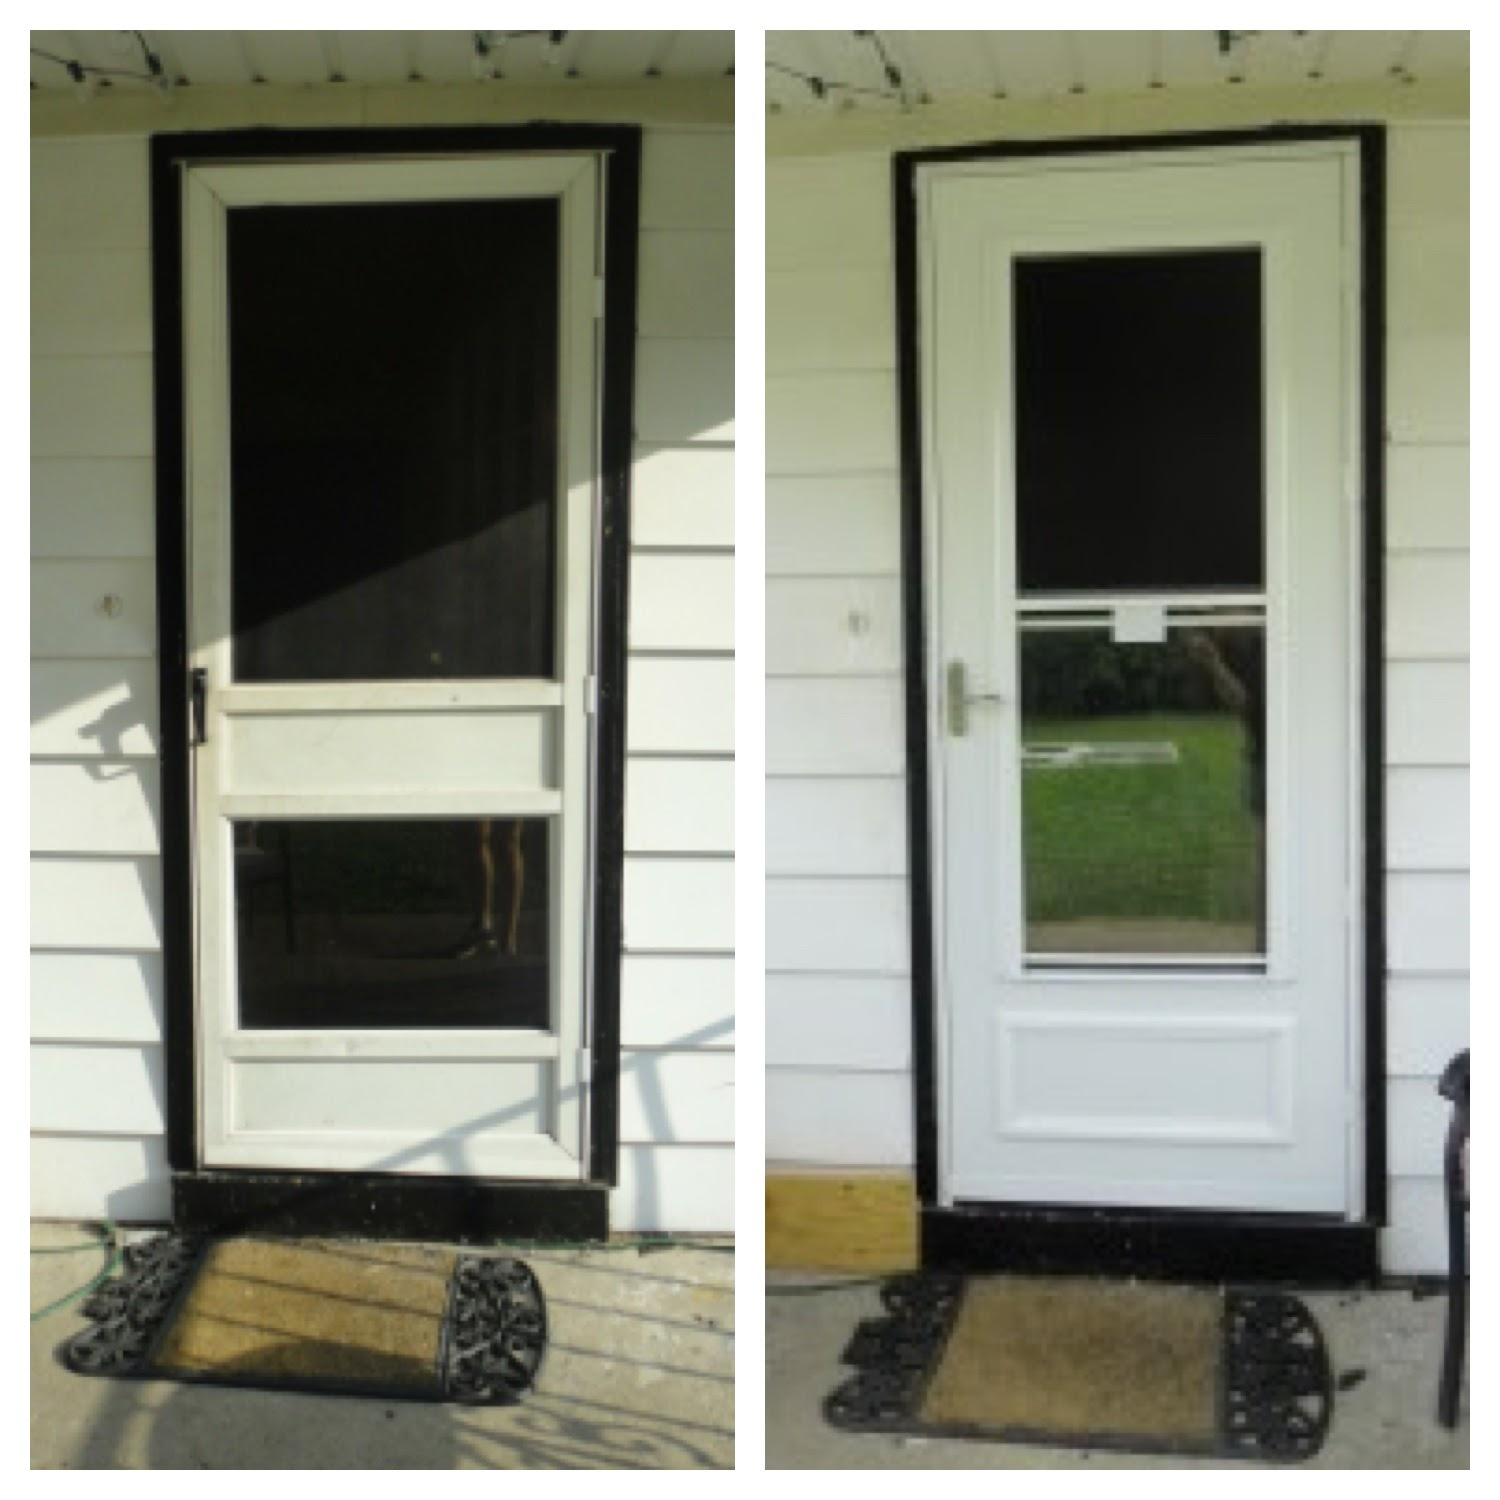 Replaced the back screen door